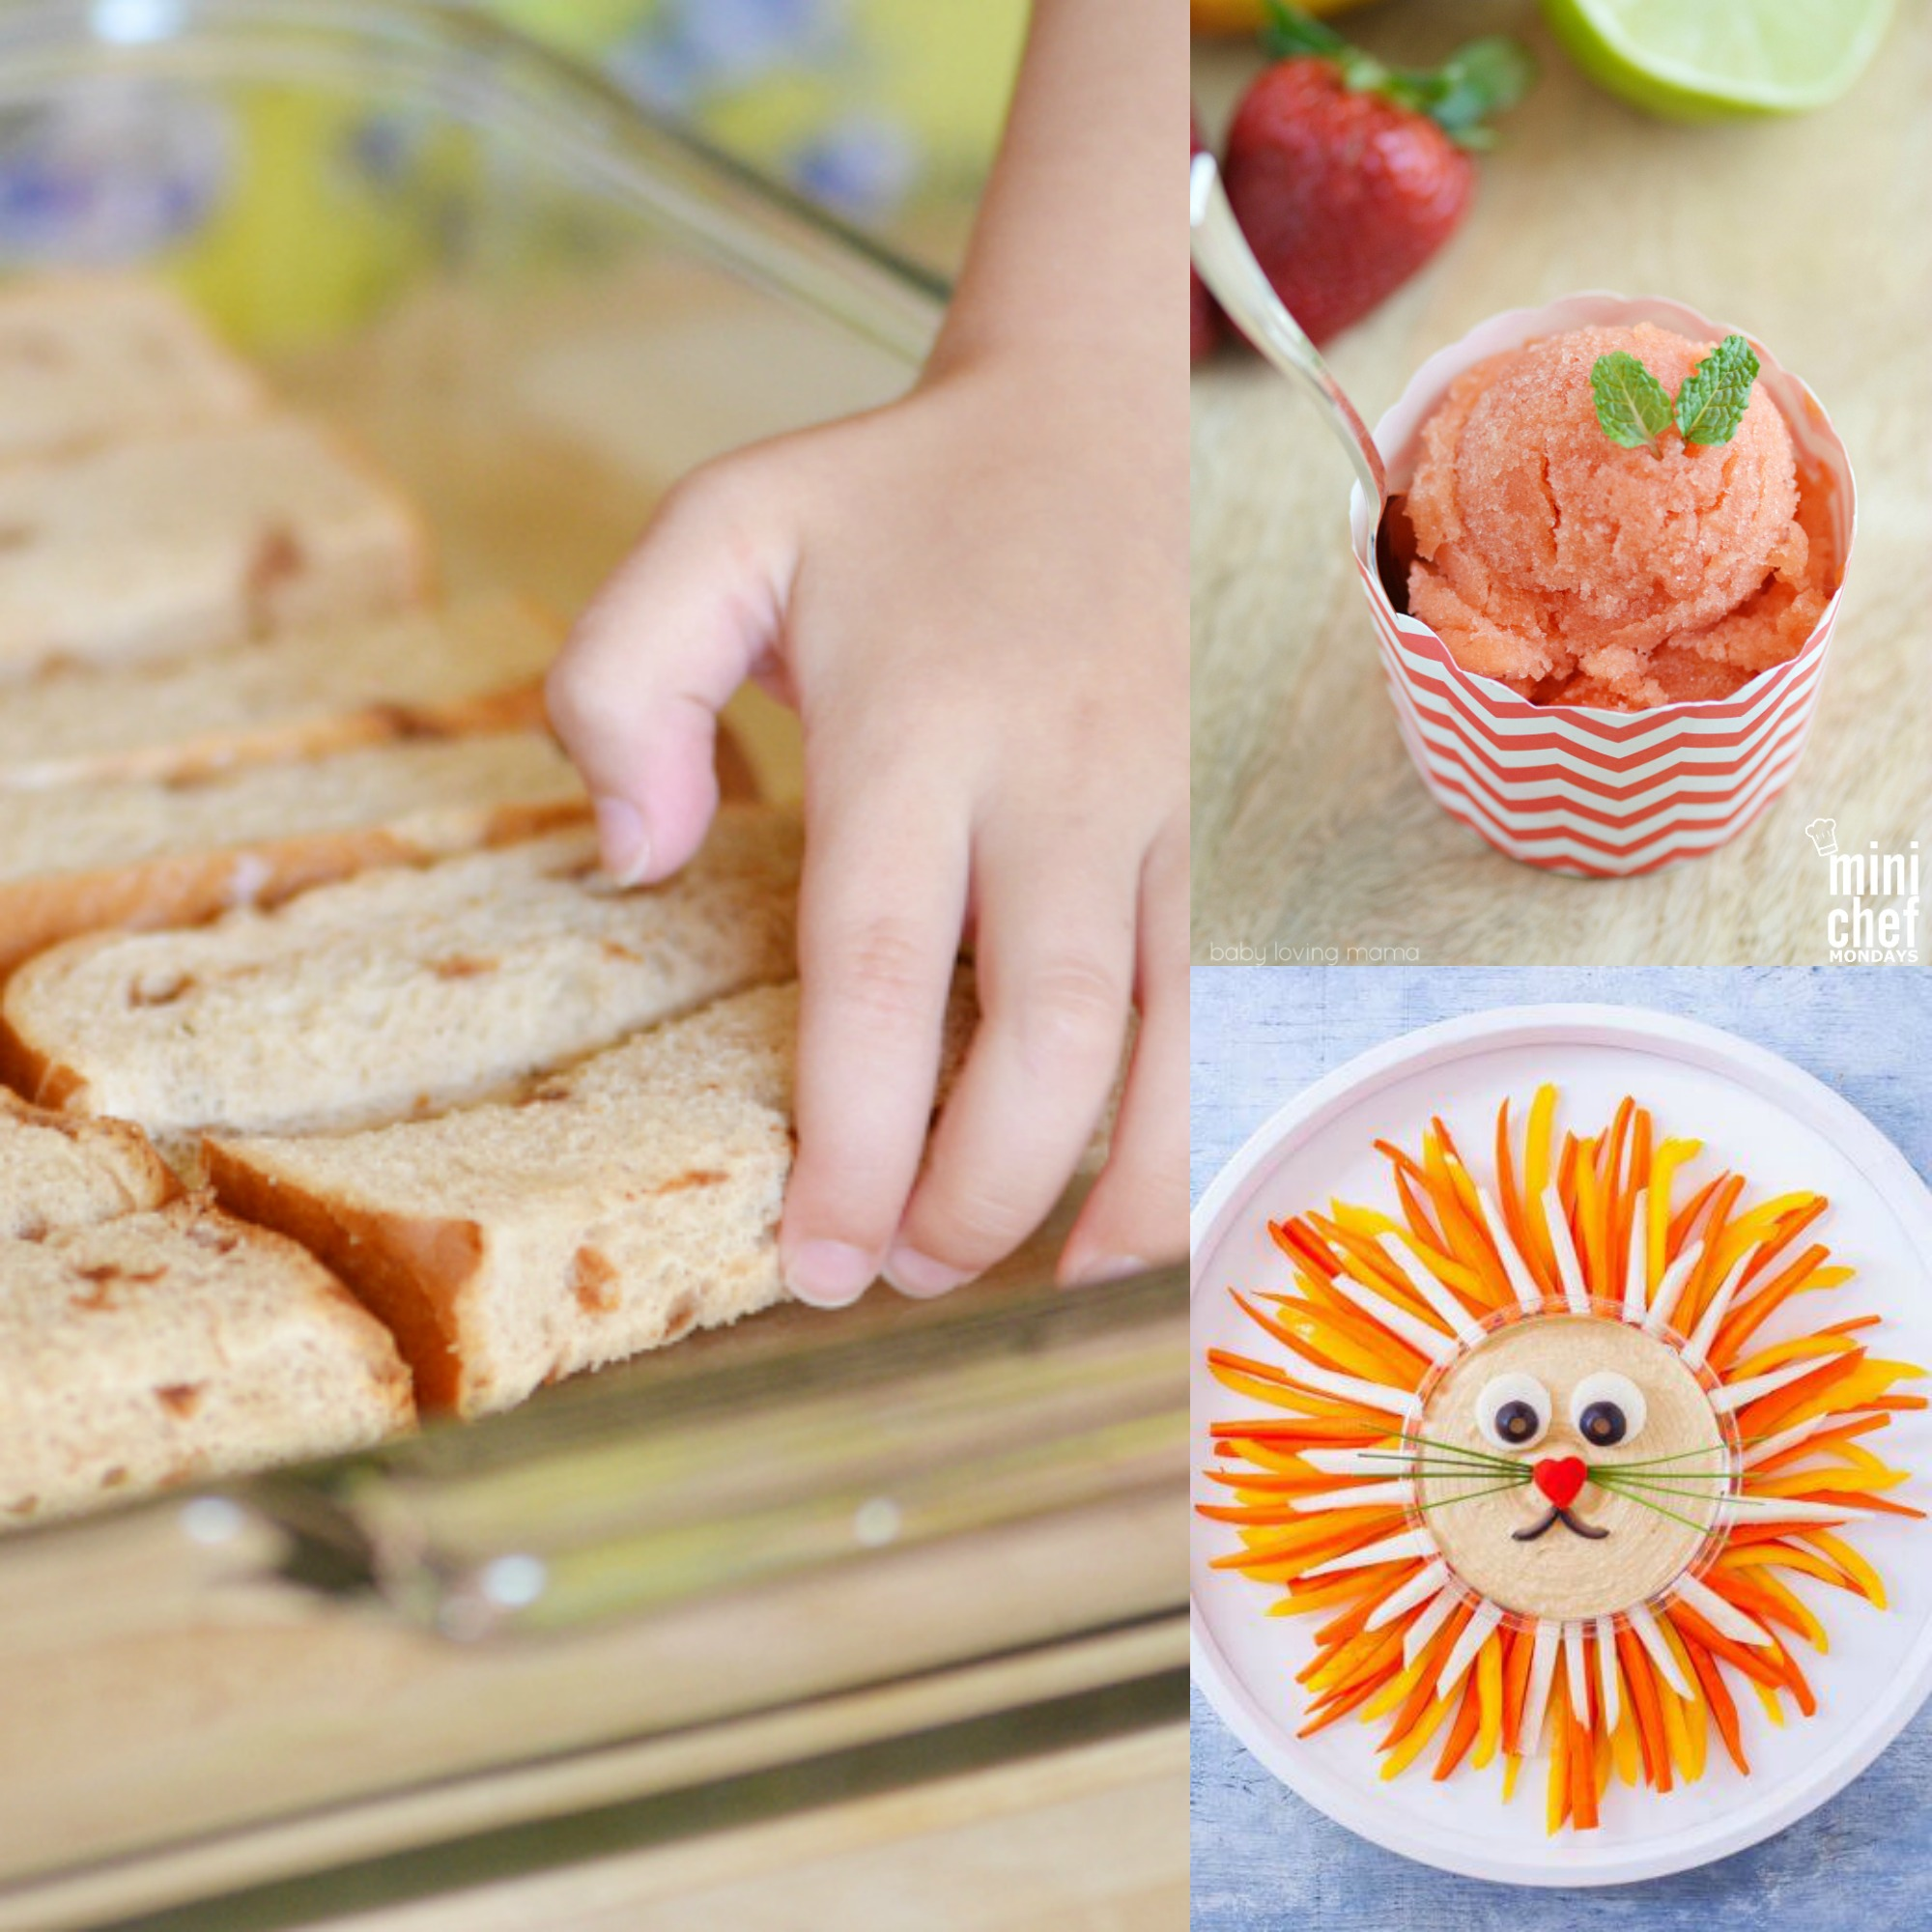 20 Recipes and Tips for Cooking with Kids in the Kitchen